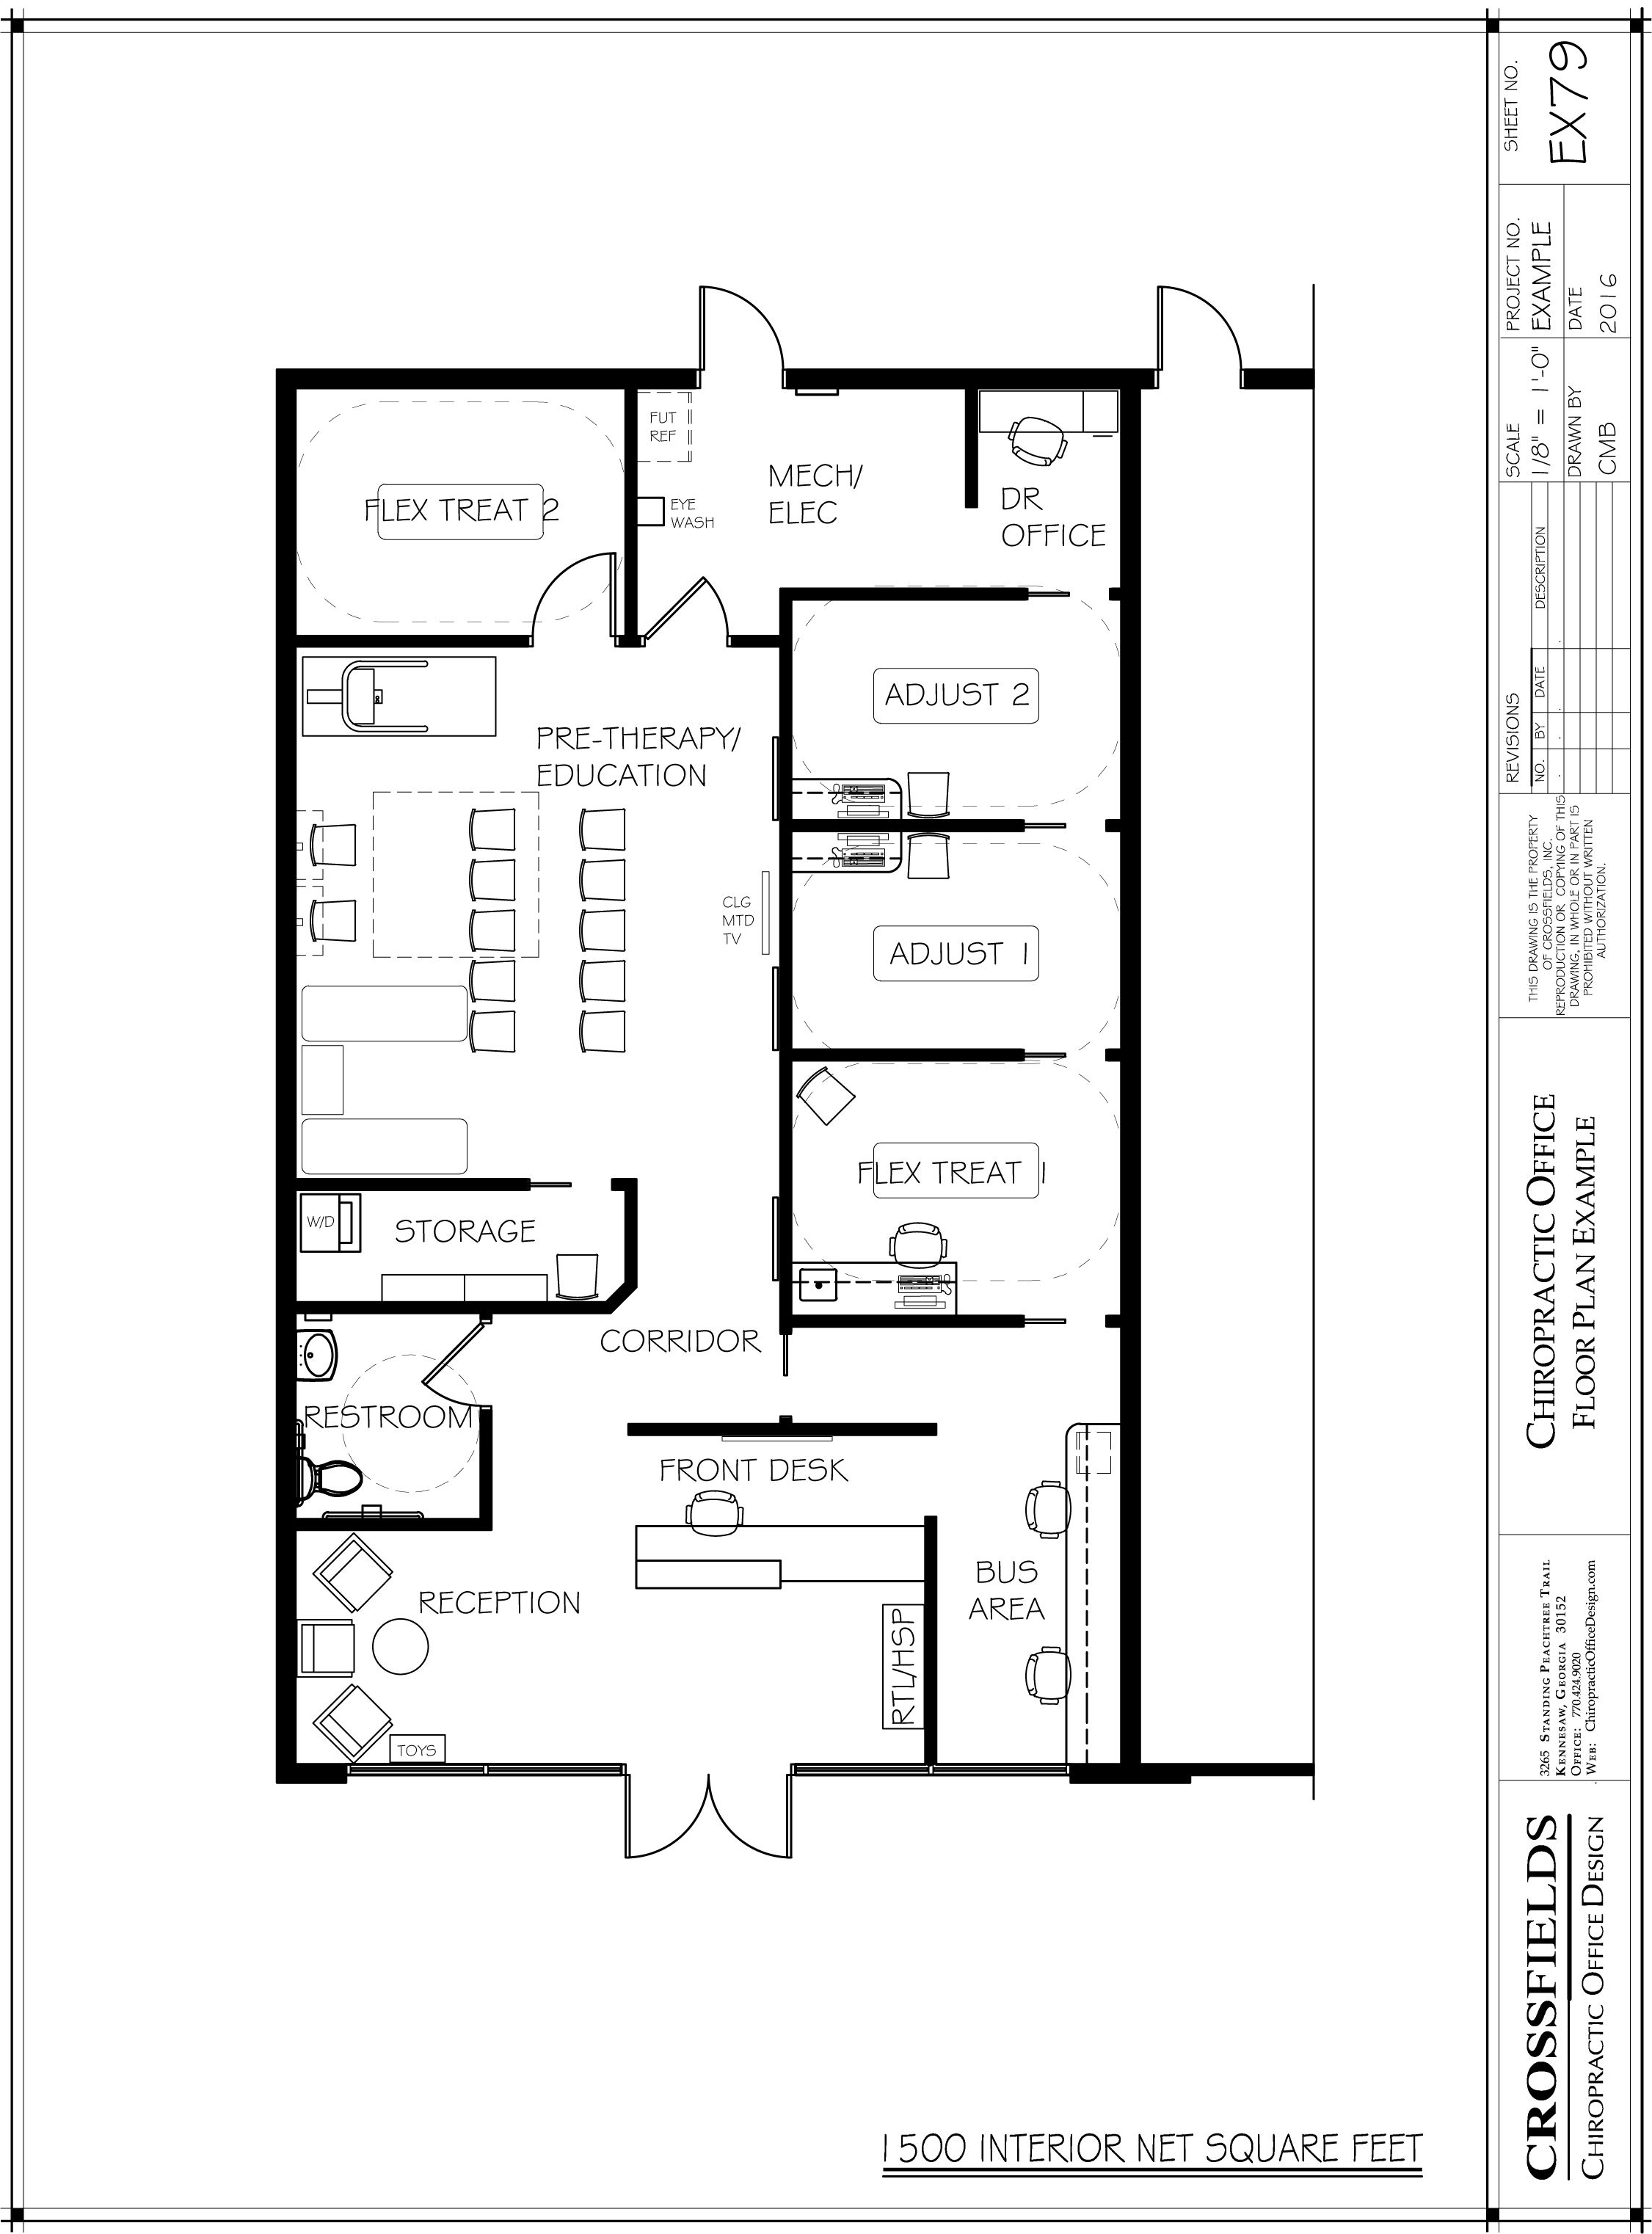 Example floor plan with closed adjusting open therapy